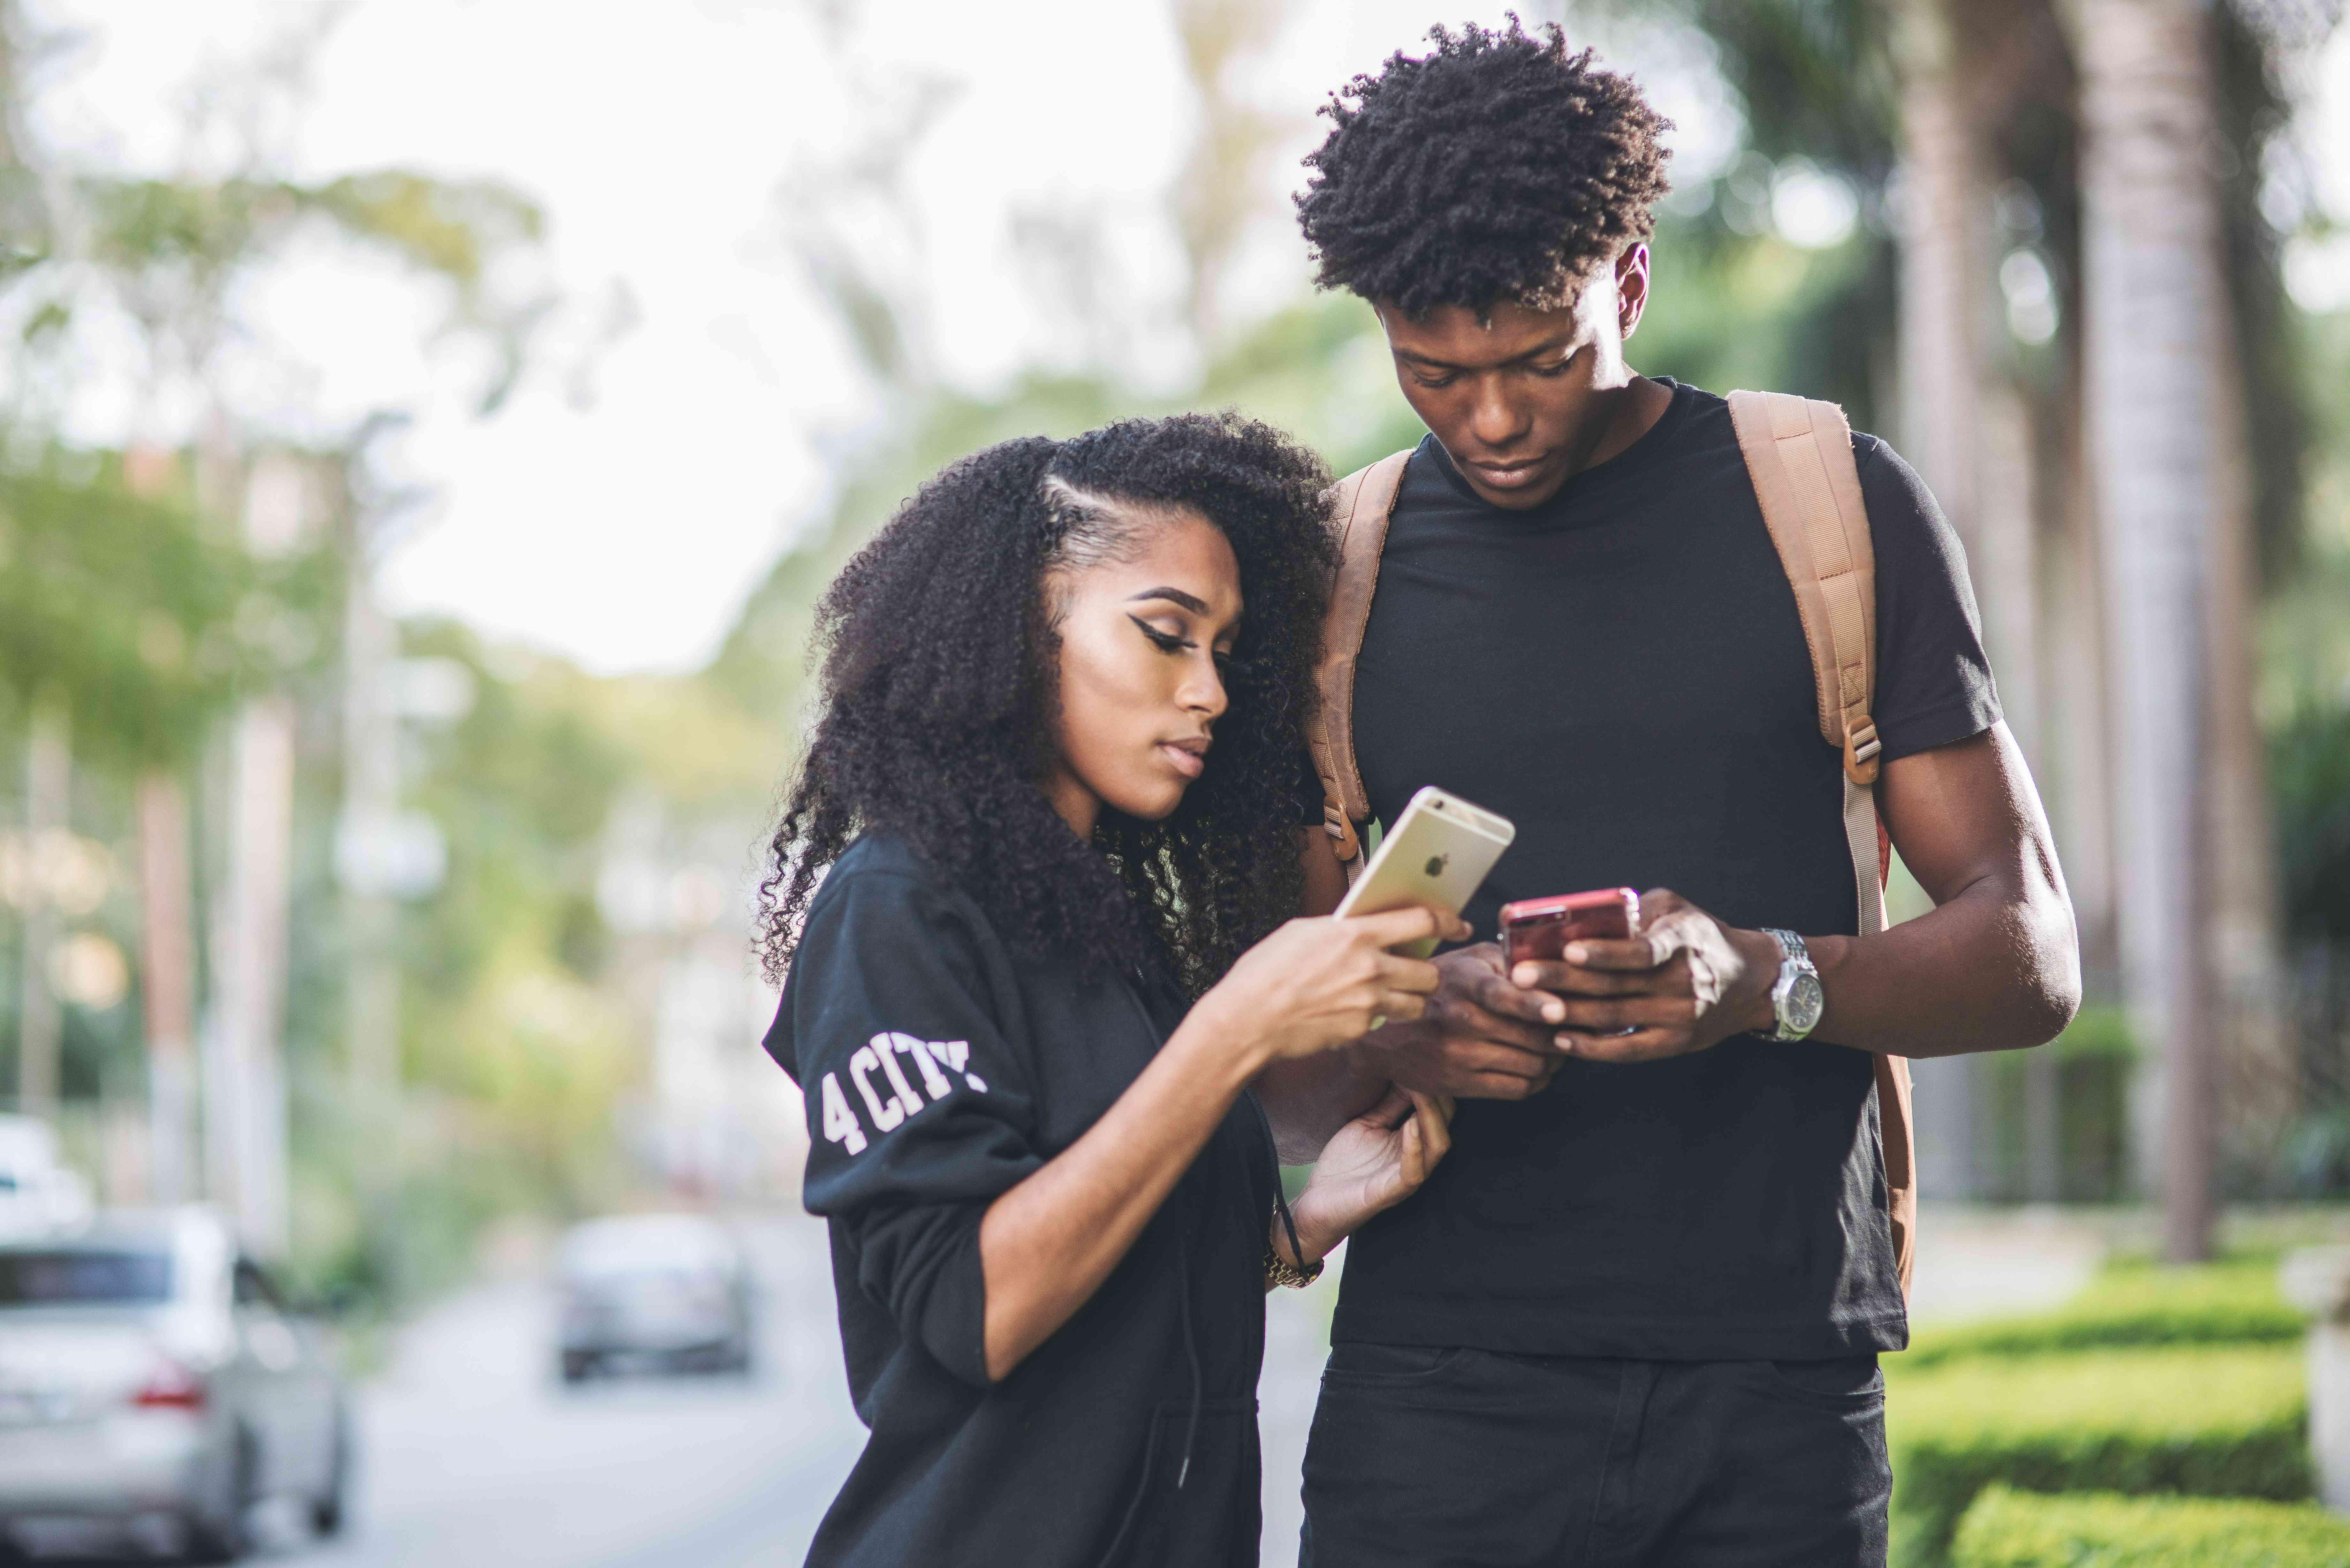 A couple using smartphones outdoors on a busy street.